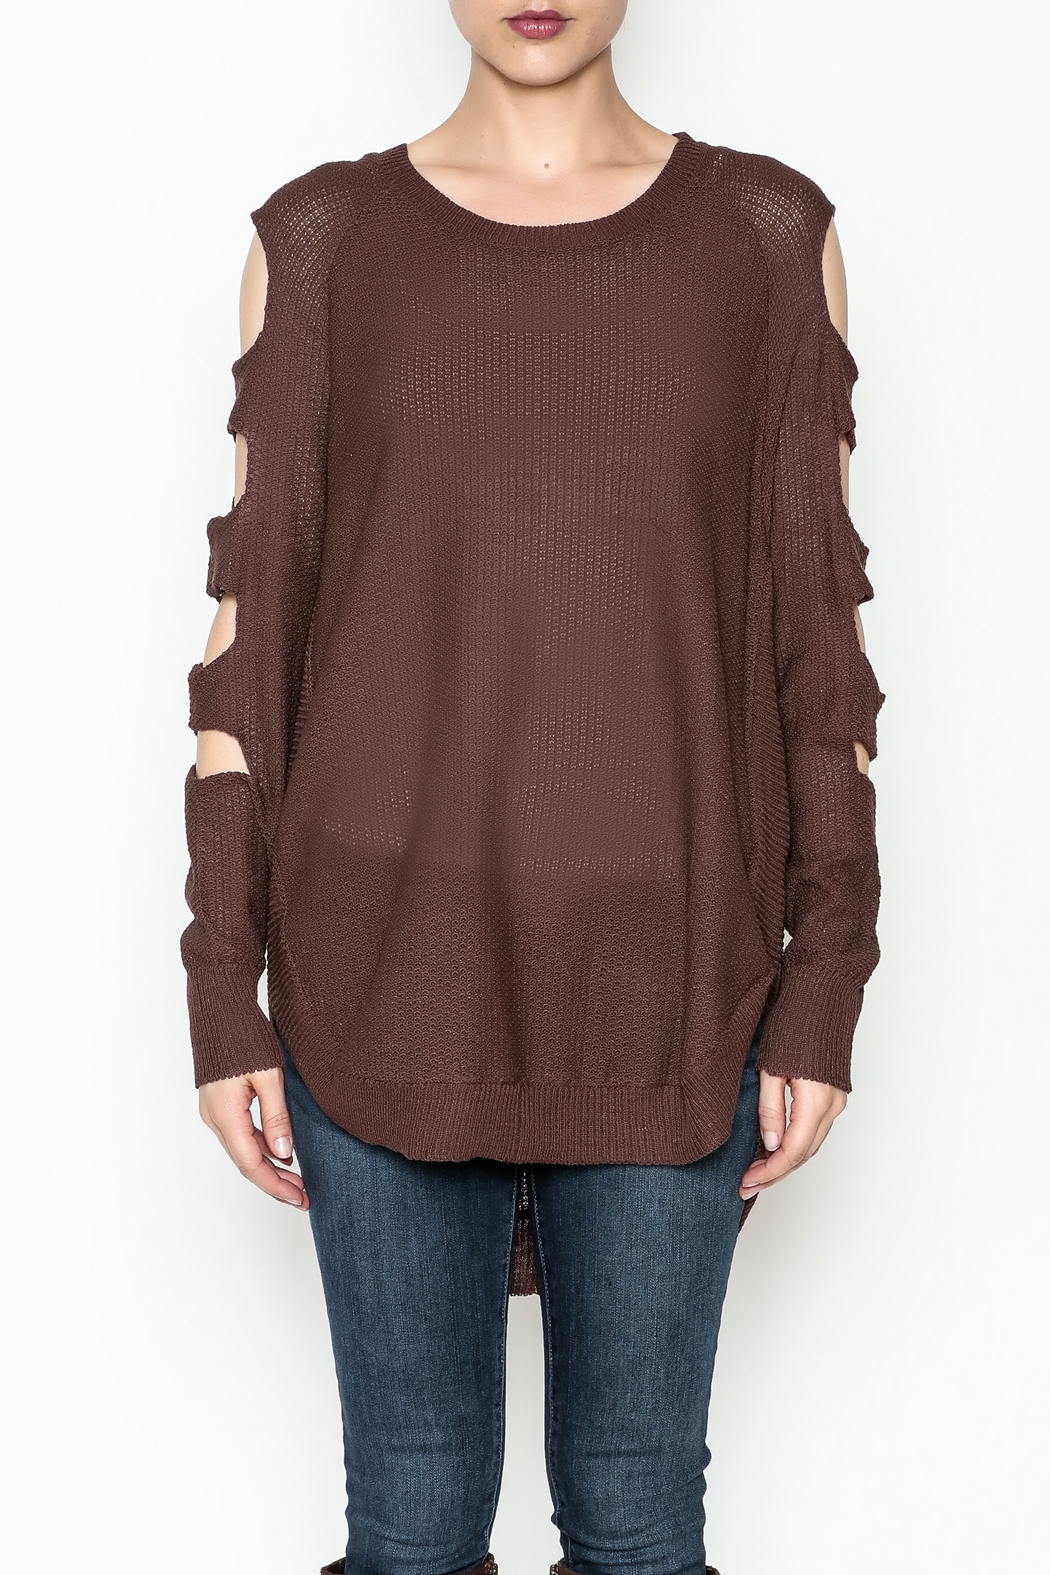 Very J Cutout Sleeve Sweater - Front Full Image